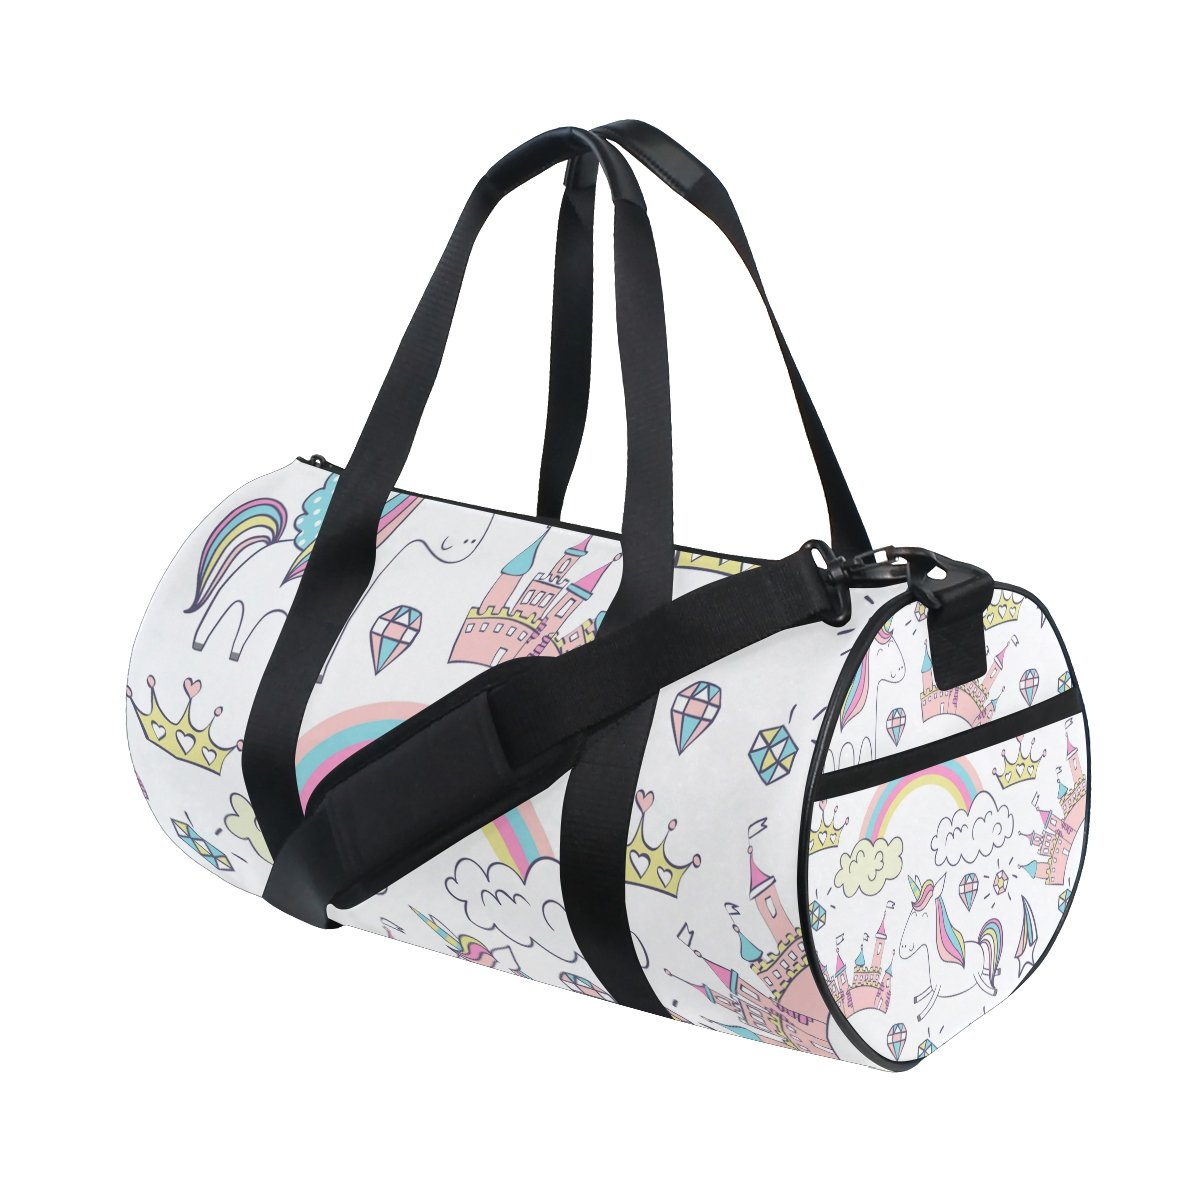 EVERUI Magic Cute Unicorn Travel Duffle Bag Sports Luggage with Backpack Tote Gym Bag for Man and Women